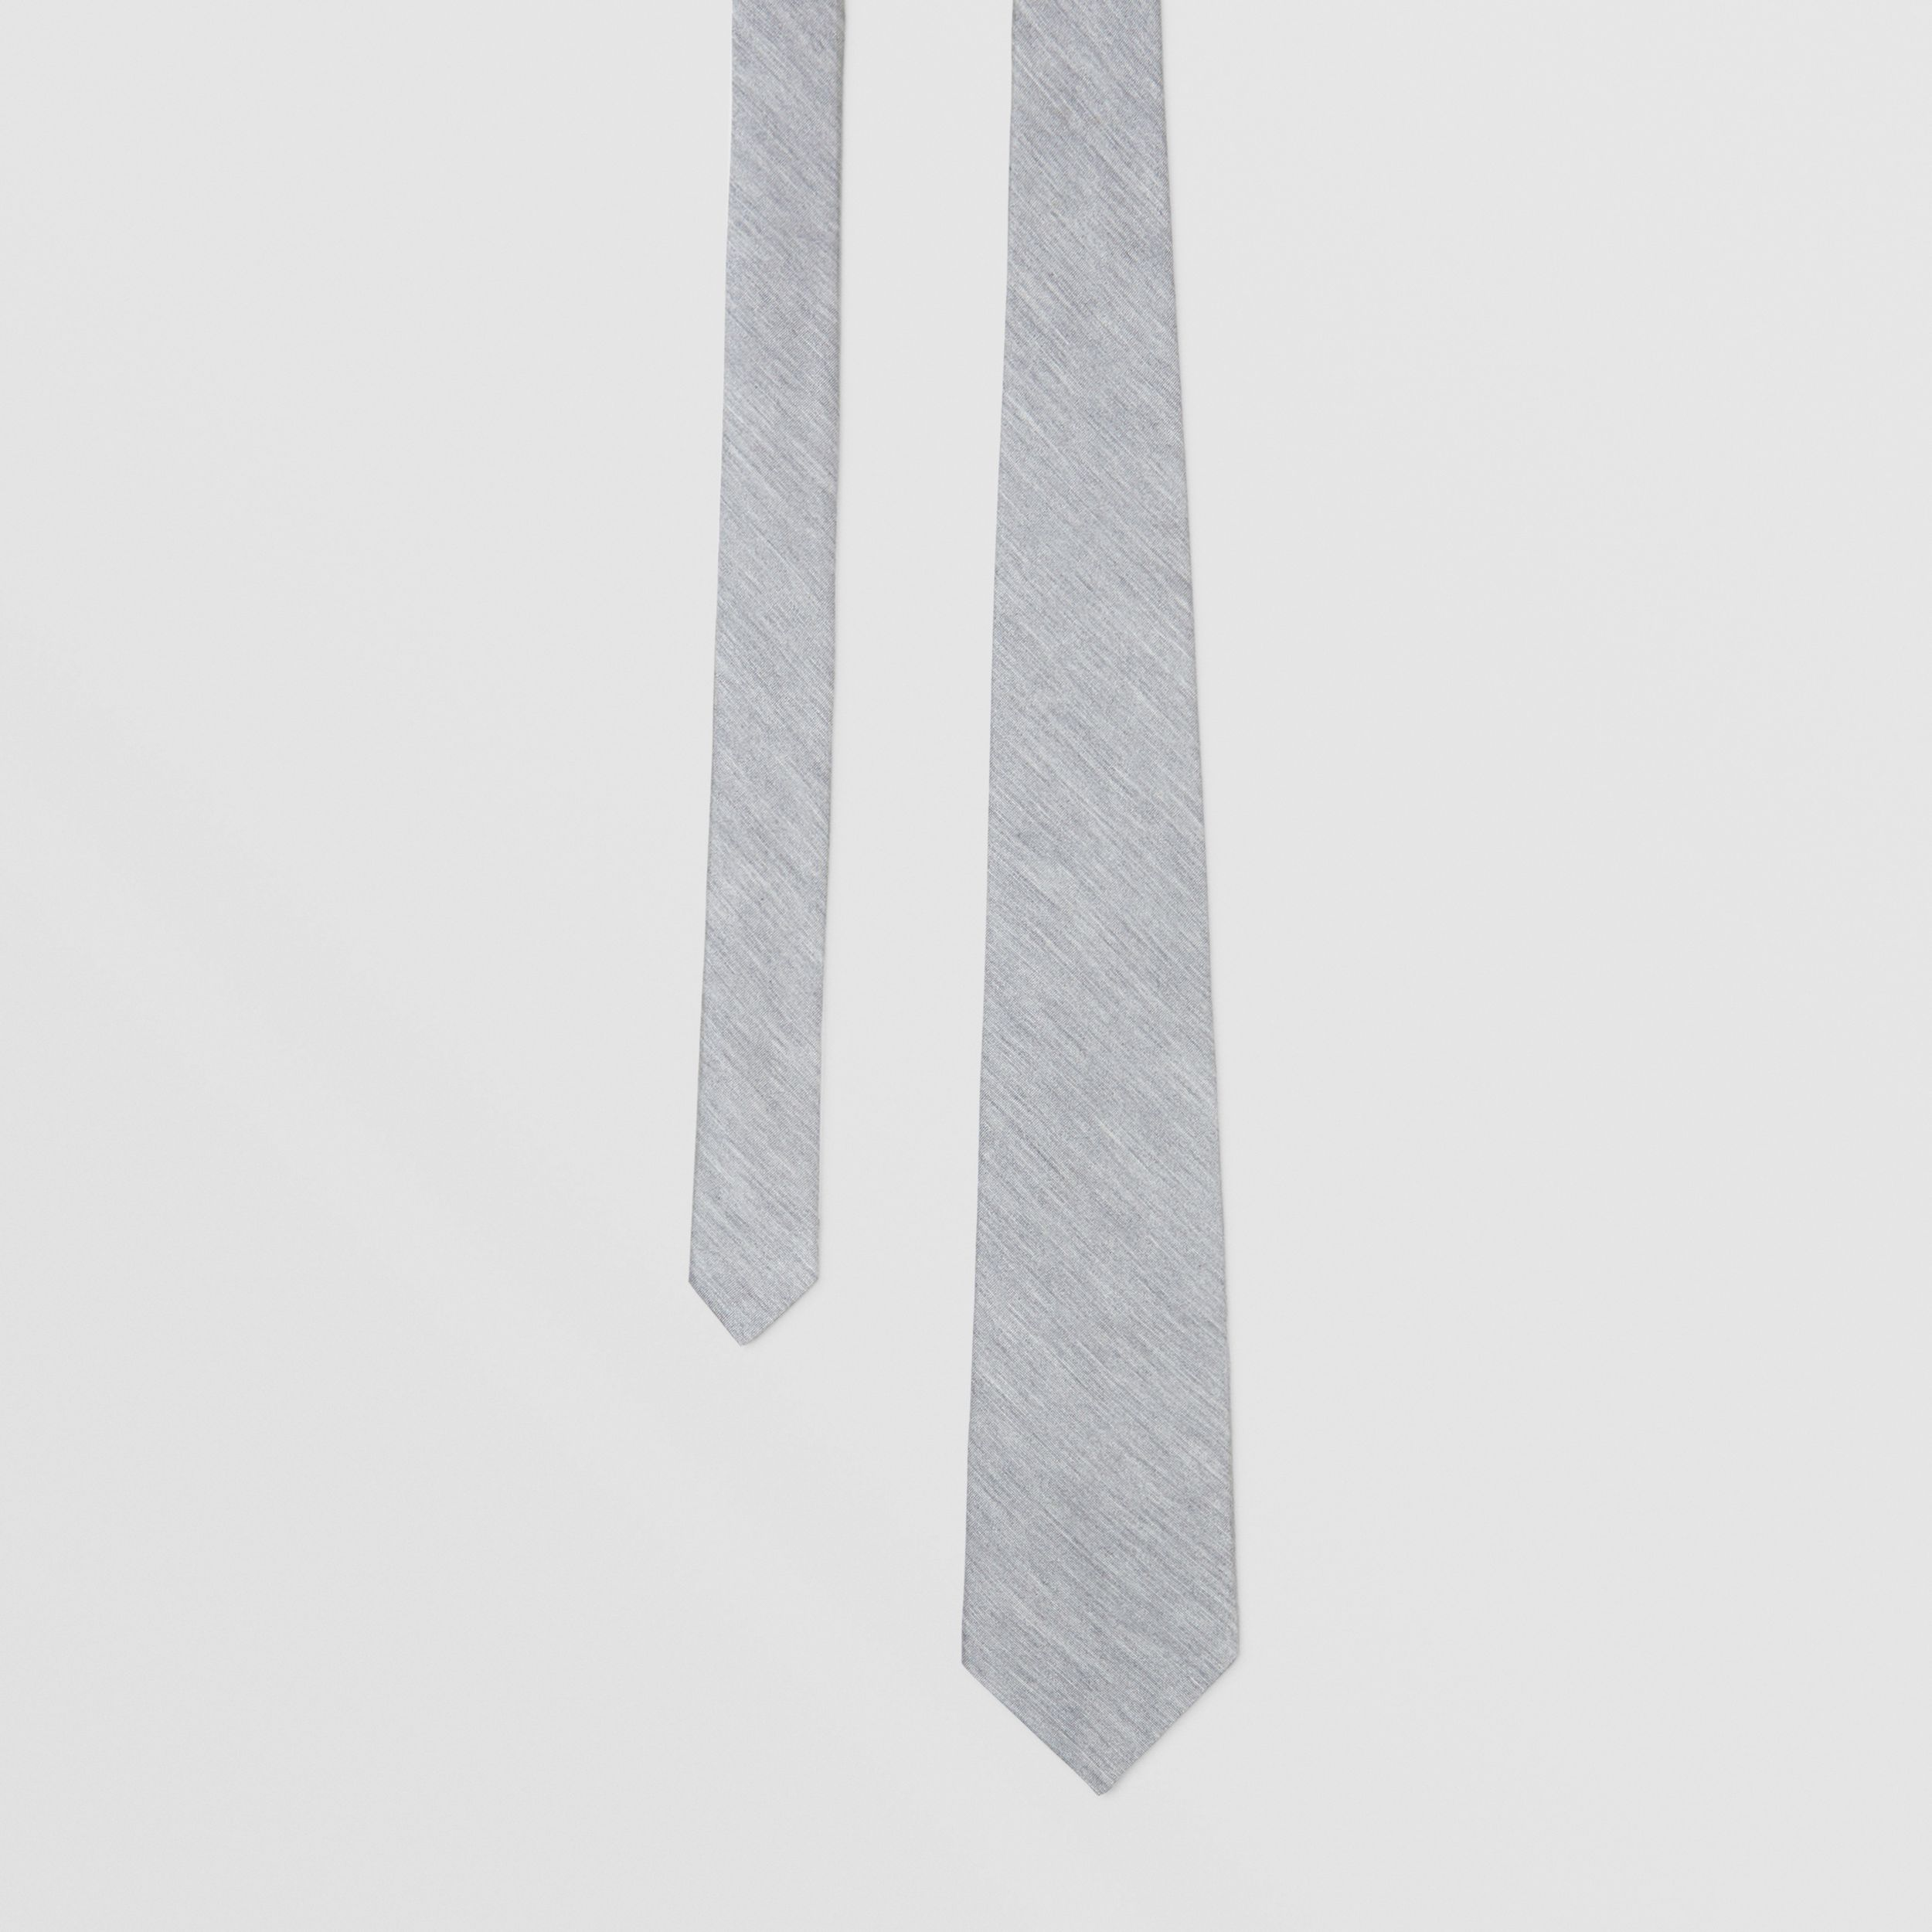 Classic Cut Silk Jersey Tie in Light Pebble Grey - Men | Burberry - 1